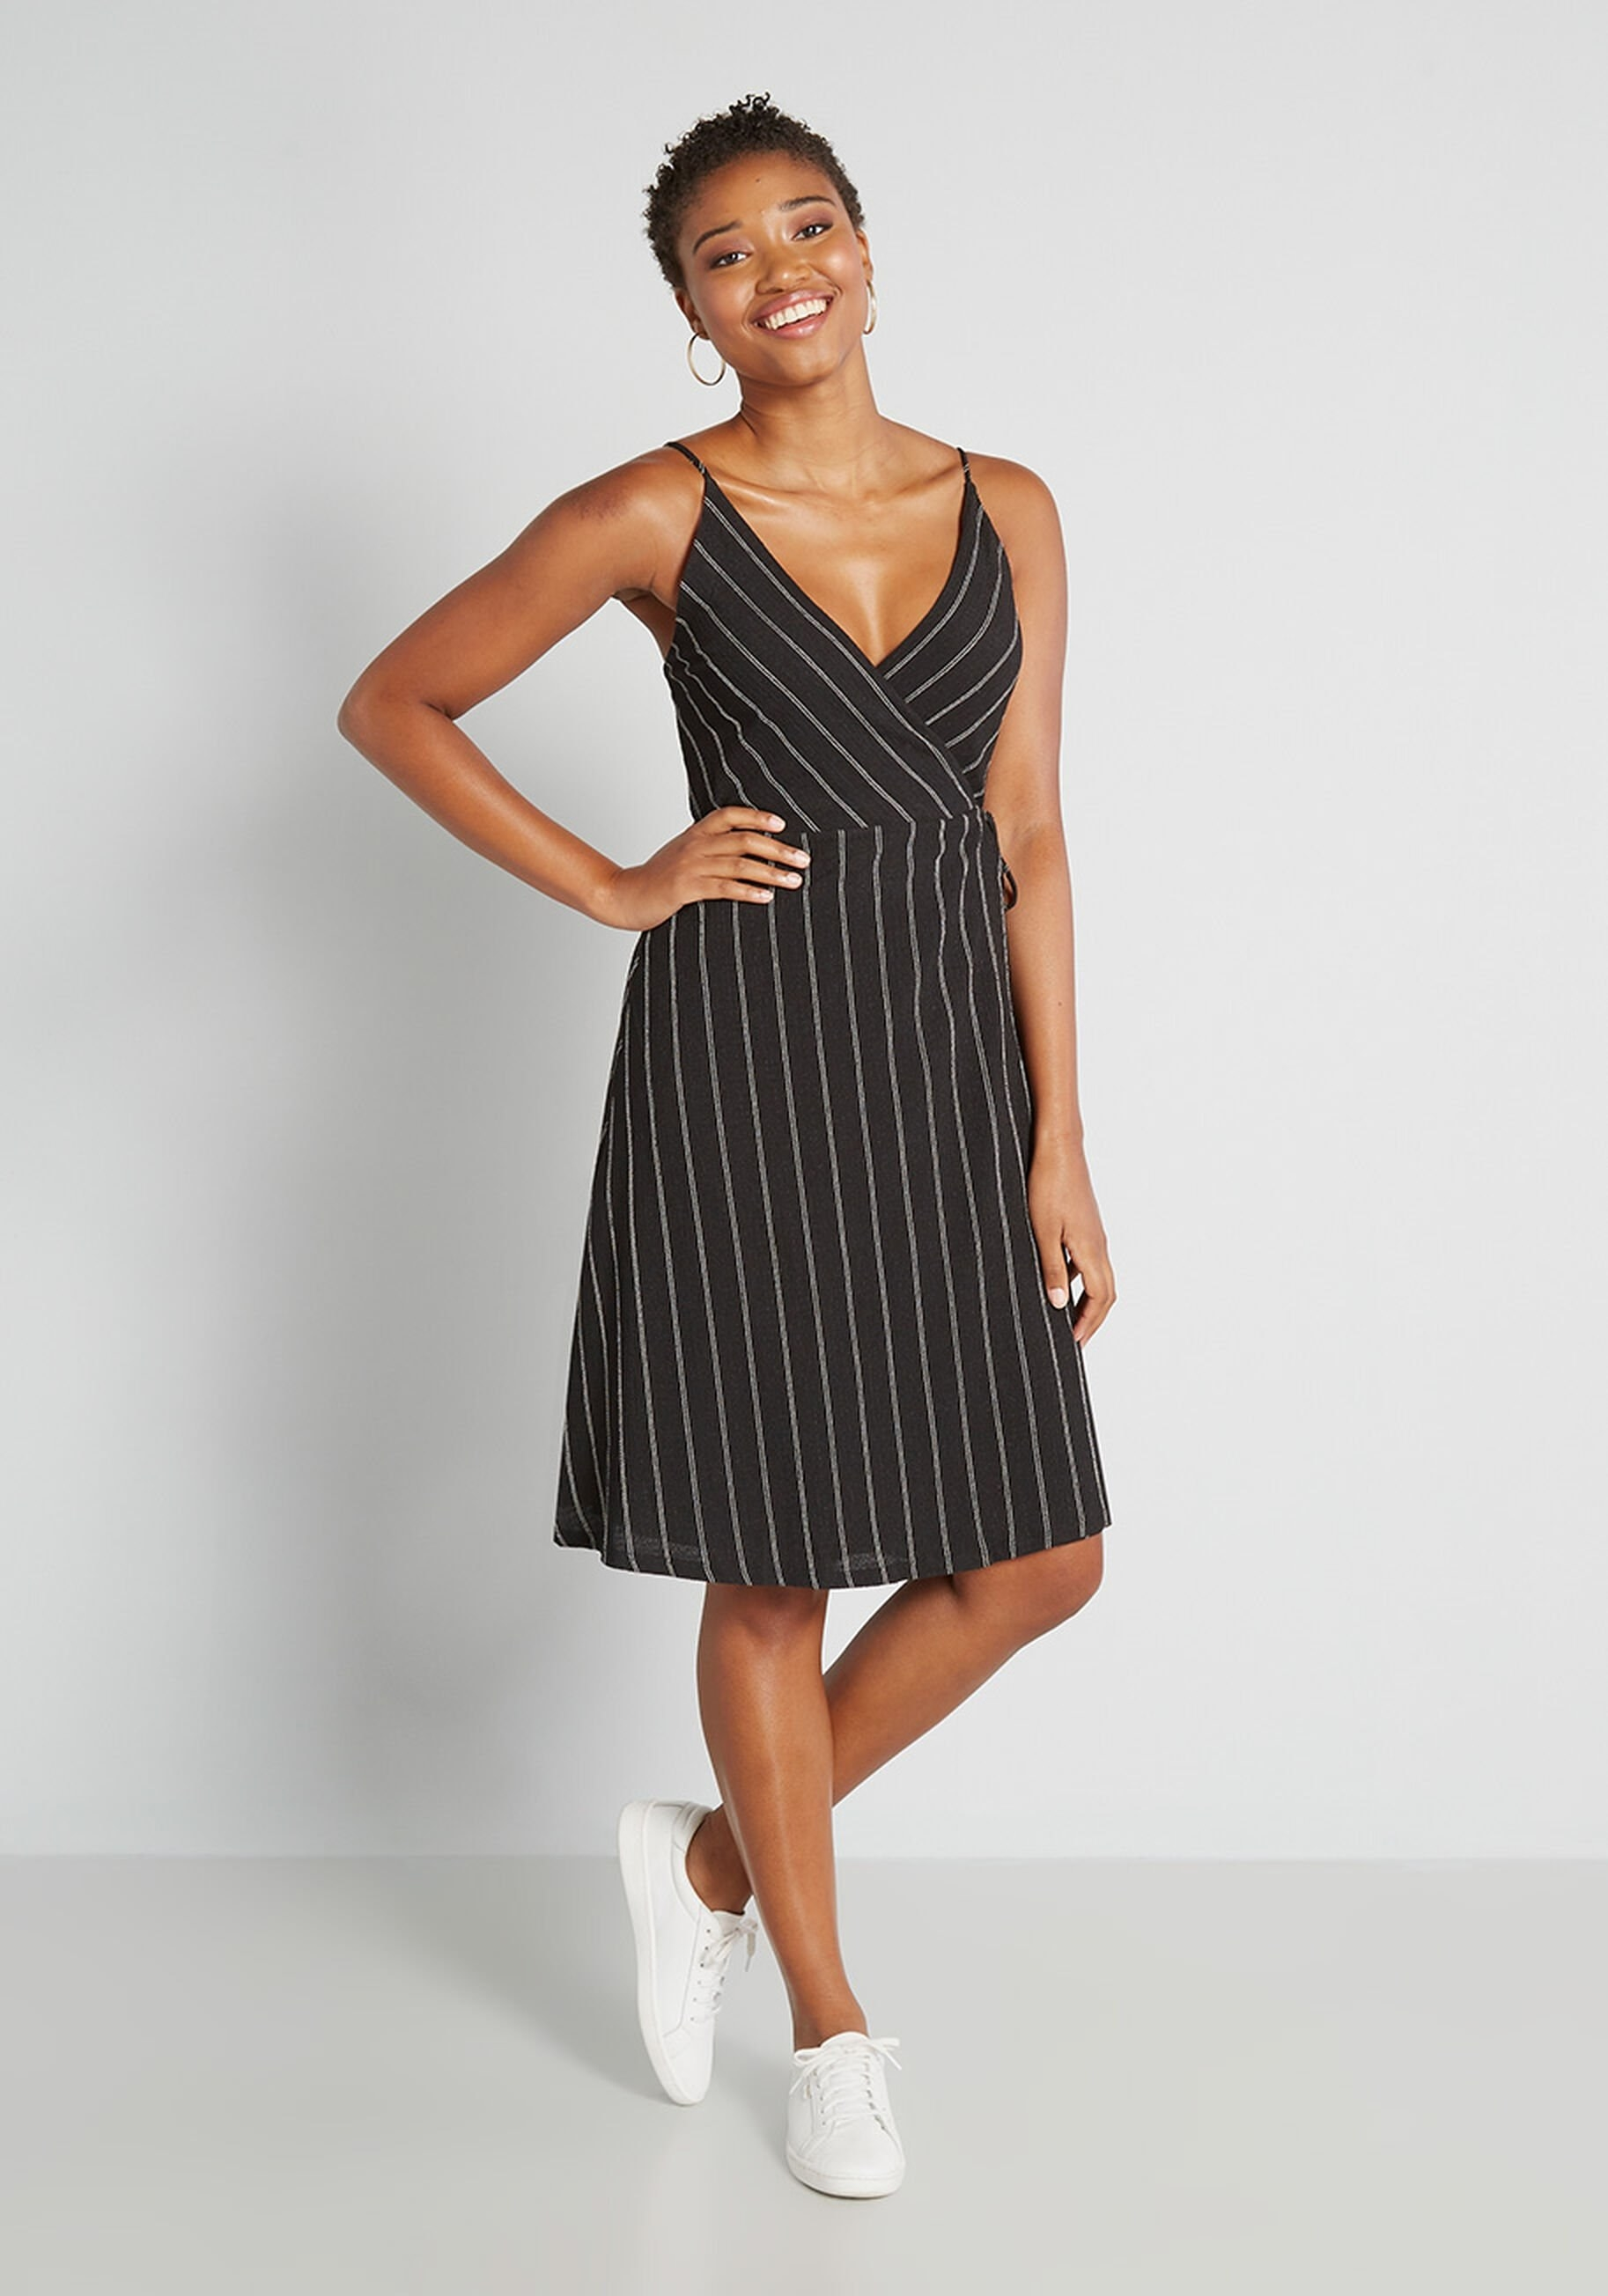 a model in the mid-length black dress with white thin vertical stripes